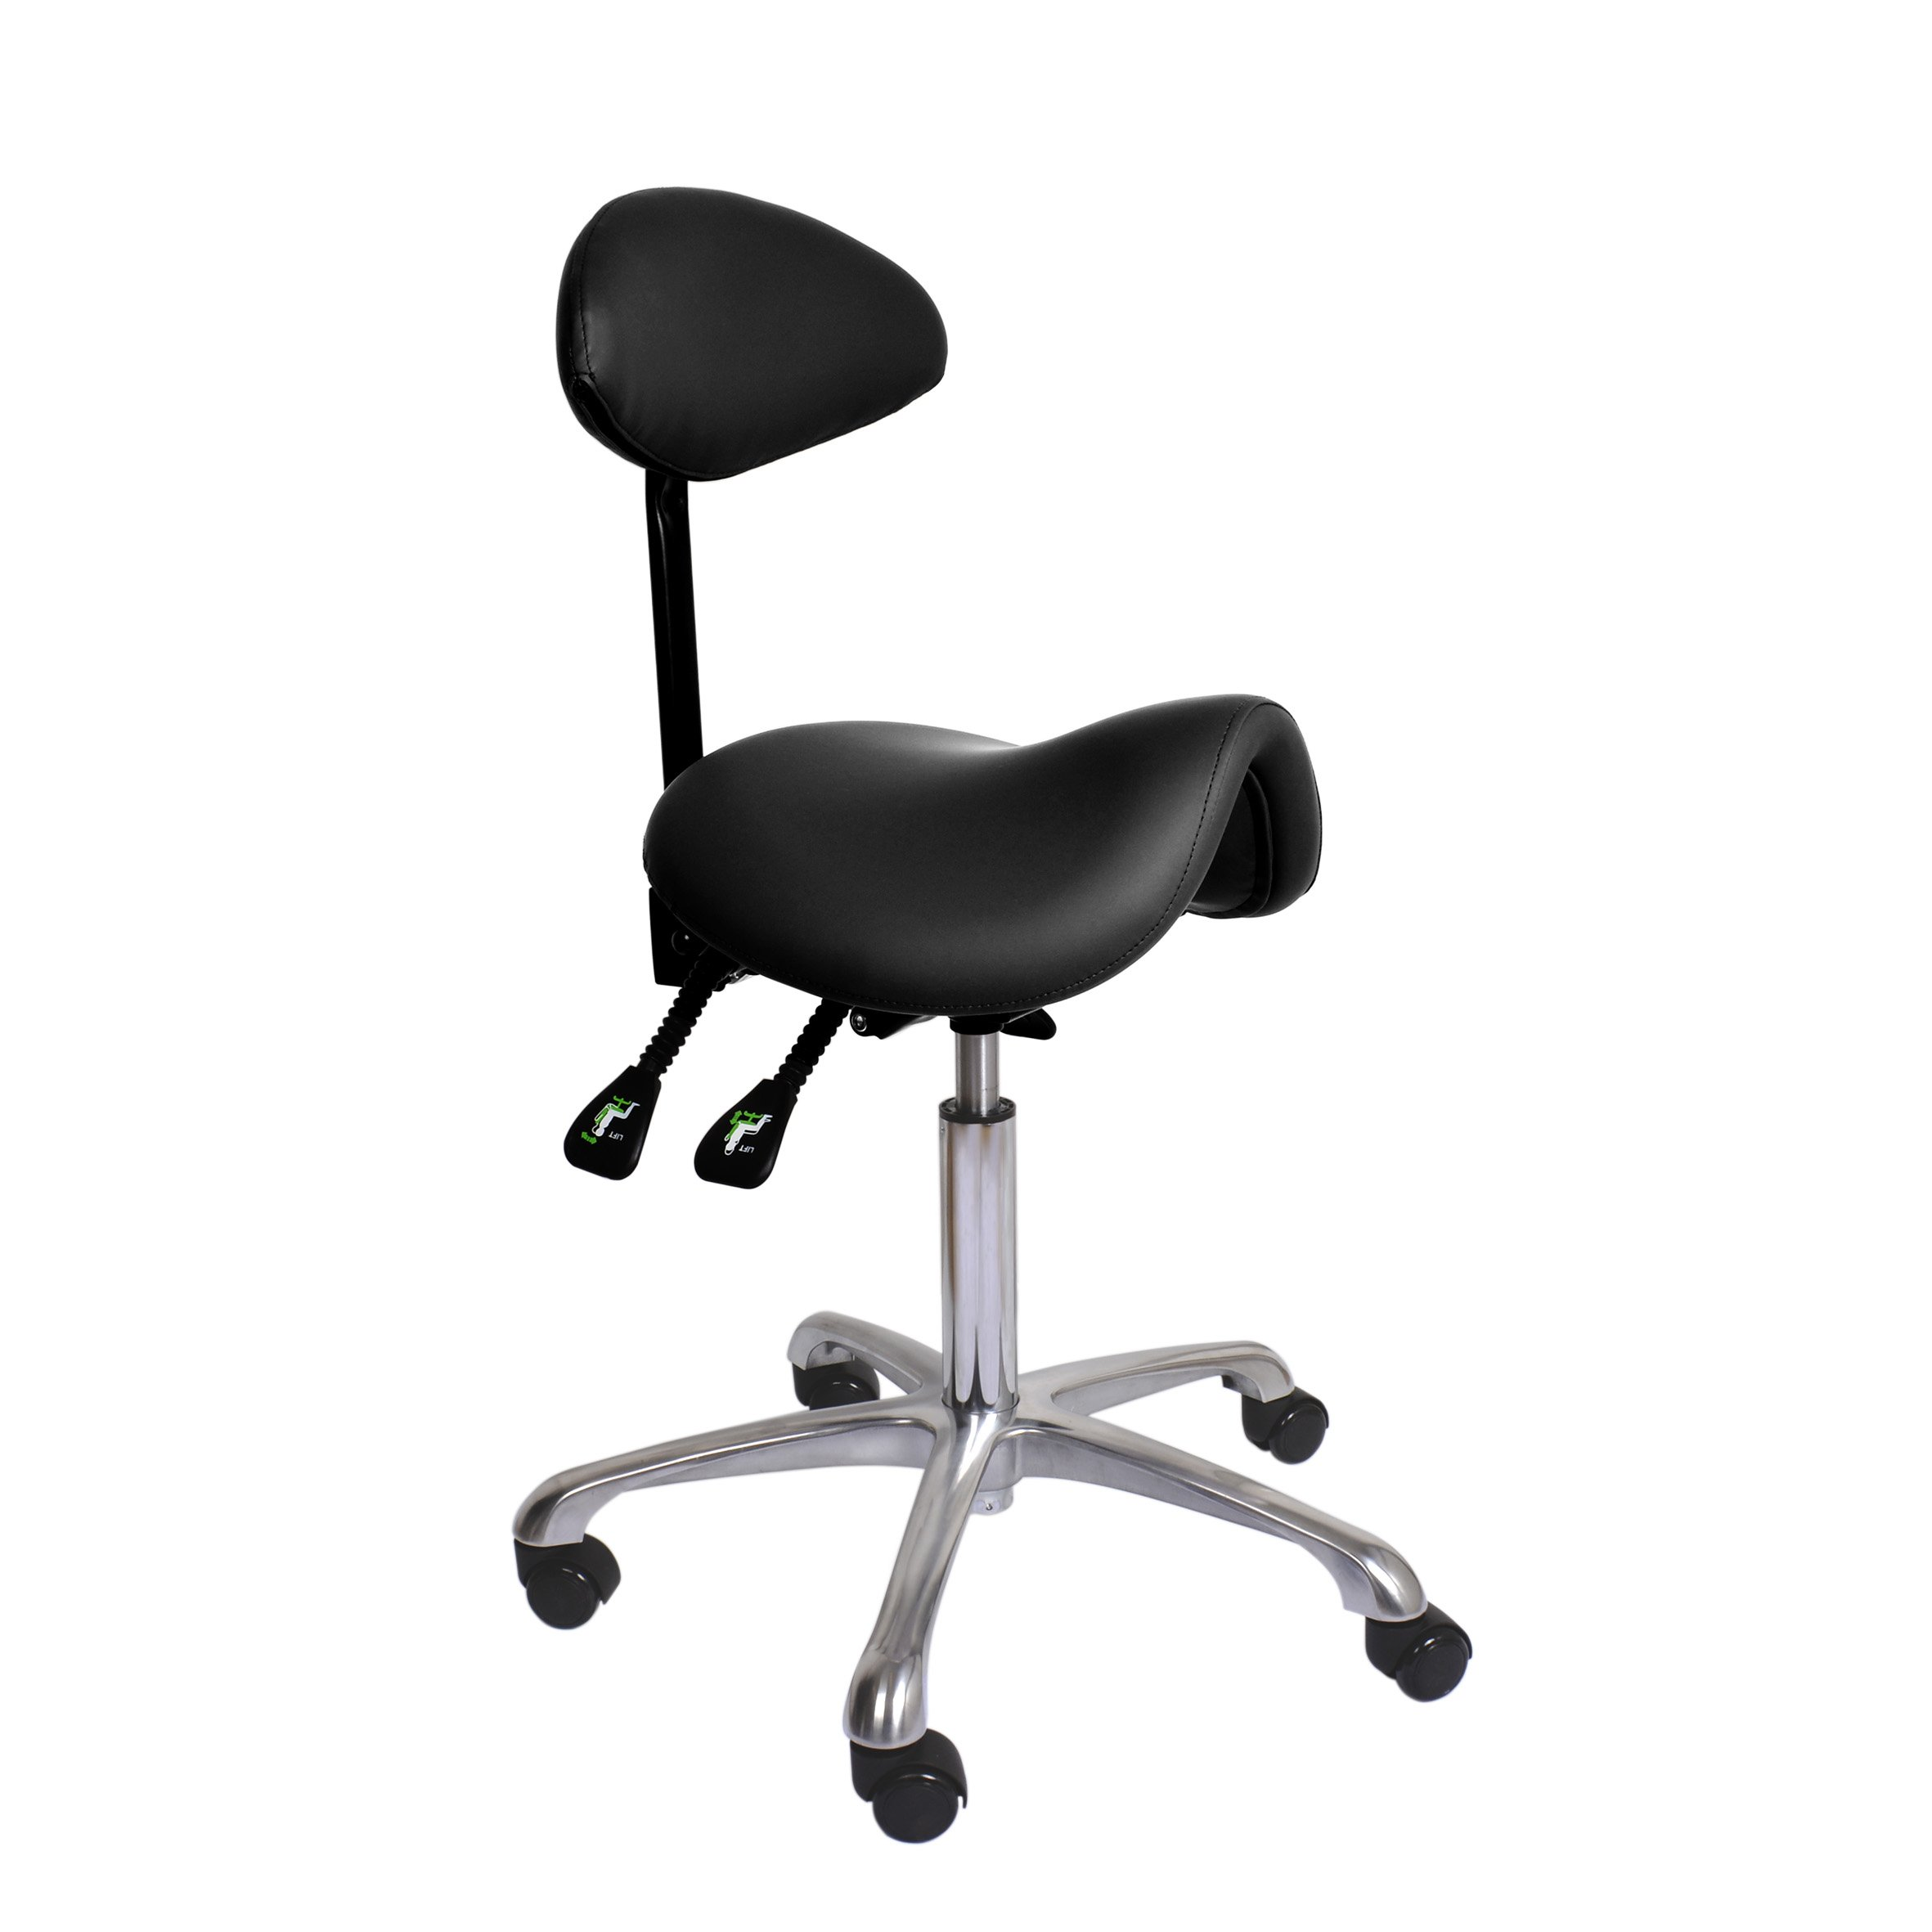 Chair with a saddle squab - black | SmartLashes.eu on